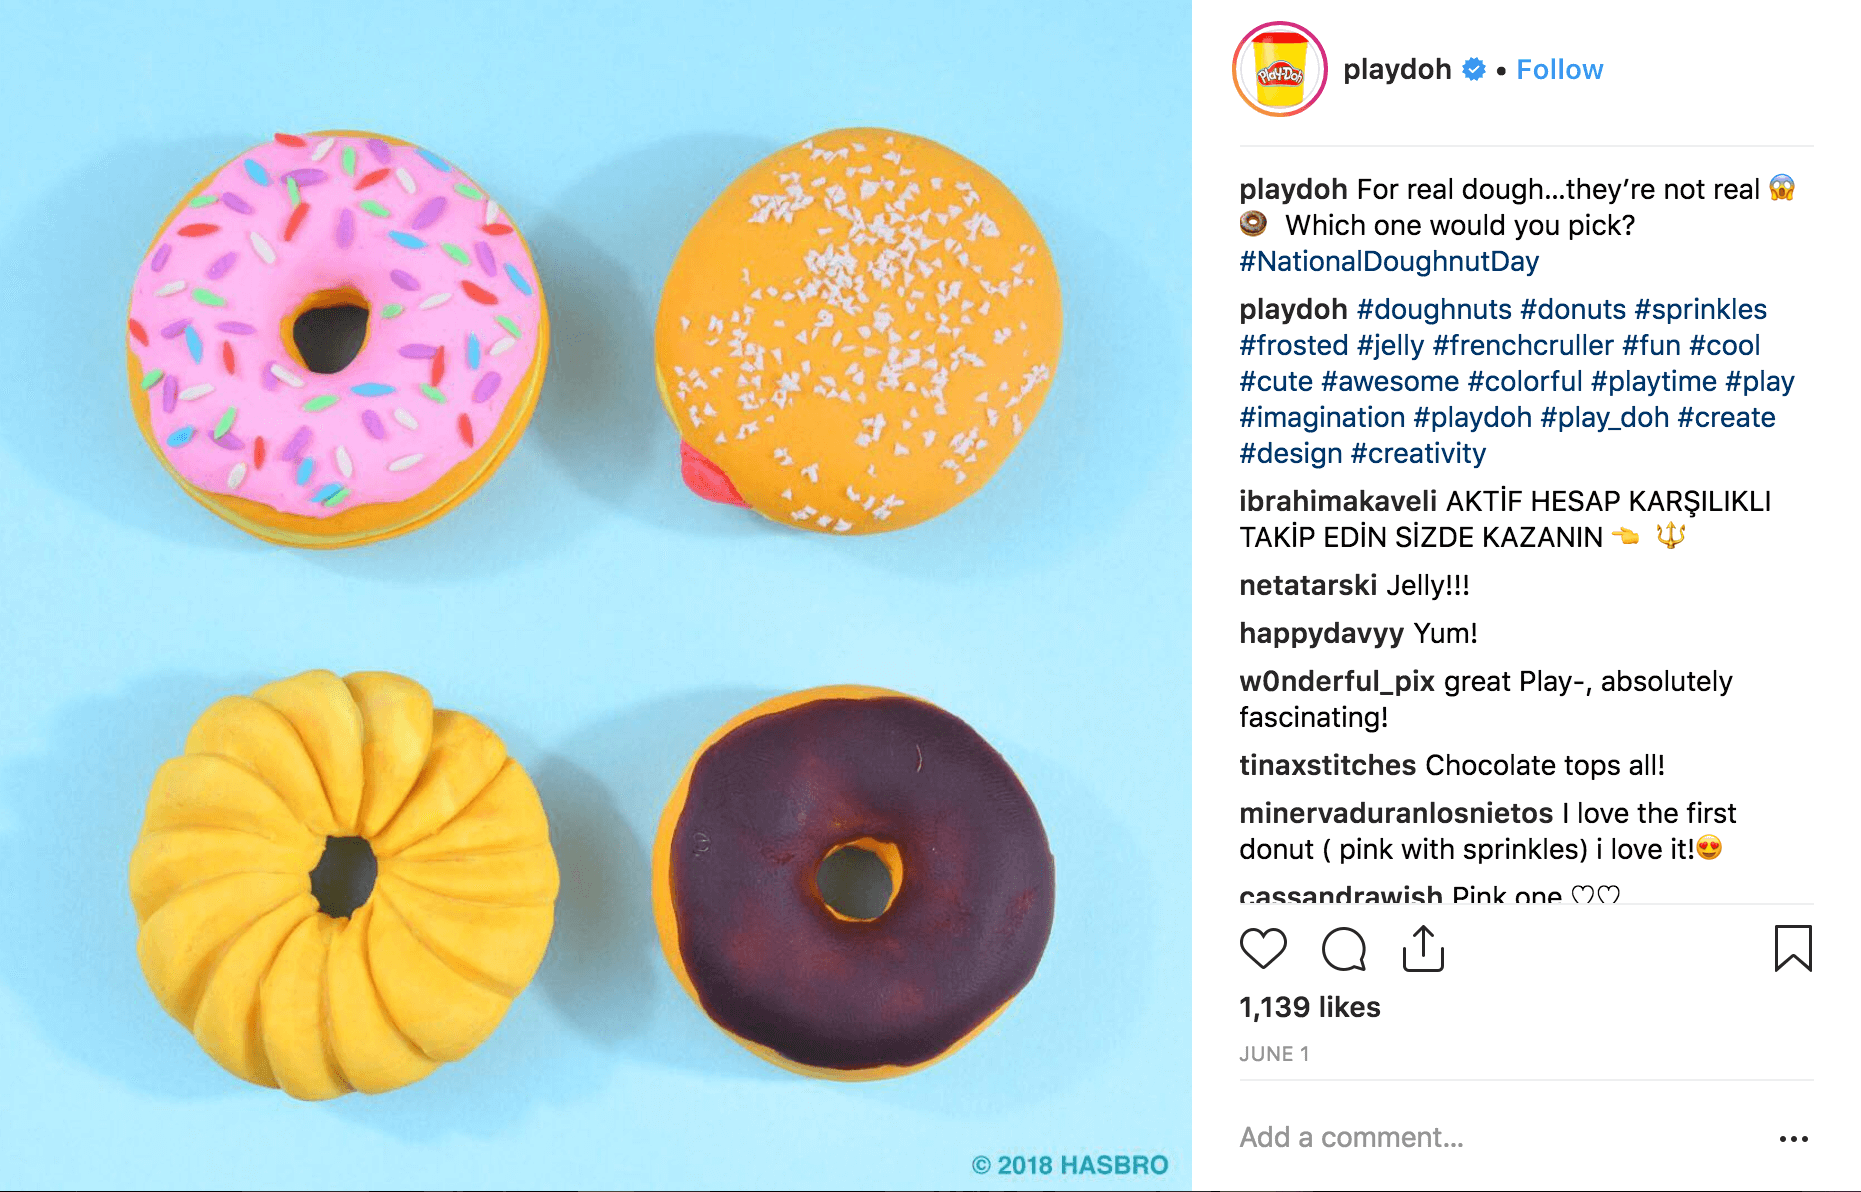 Play Doh on National Doughnut Day